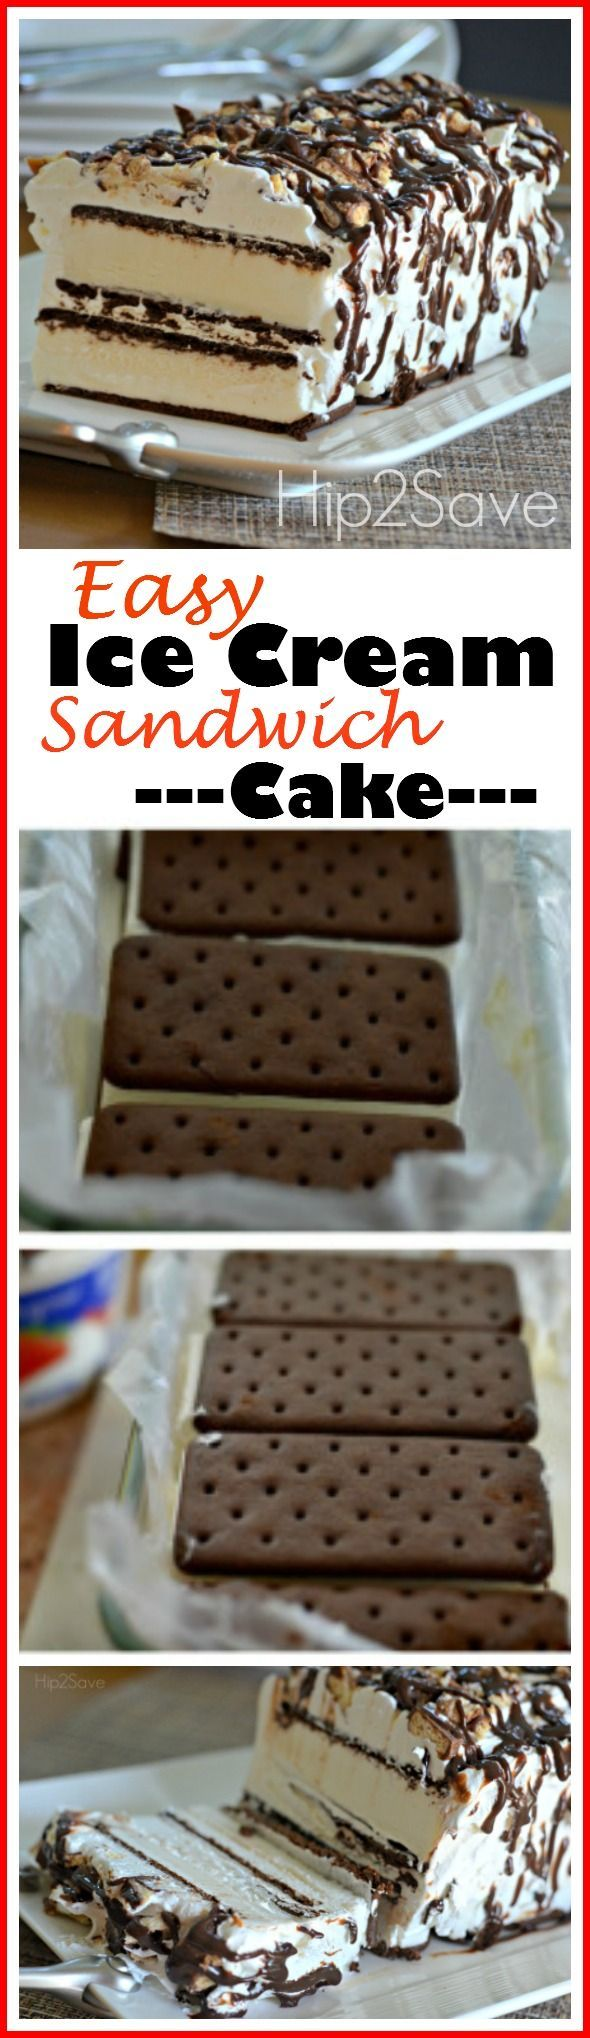 Enjoy this wonderful and super easy ice cream sandwich recipe during those summer days. Easy to make, and delicious melt in your mouth goodness.